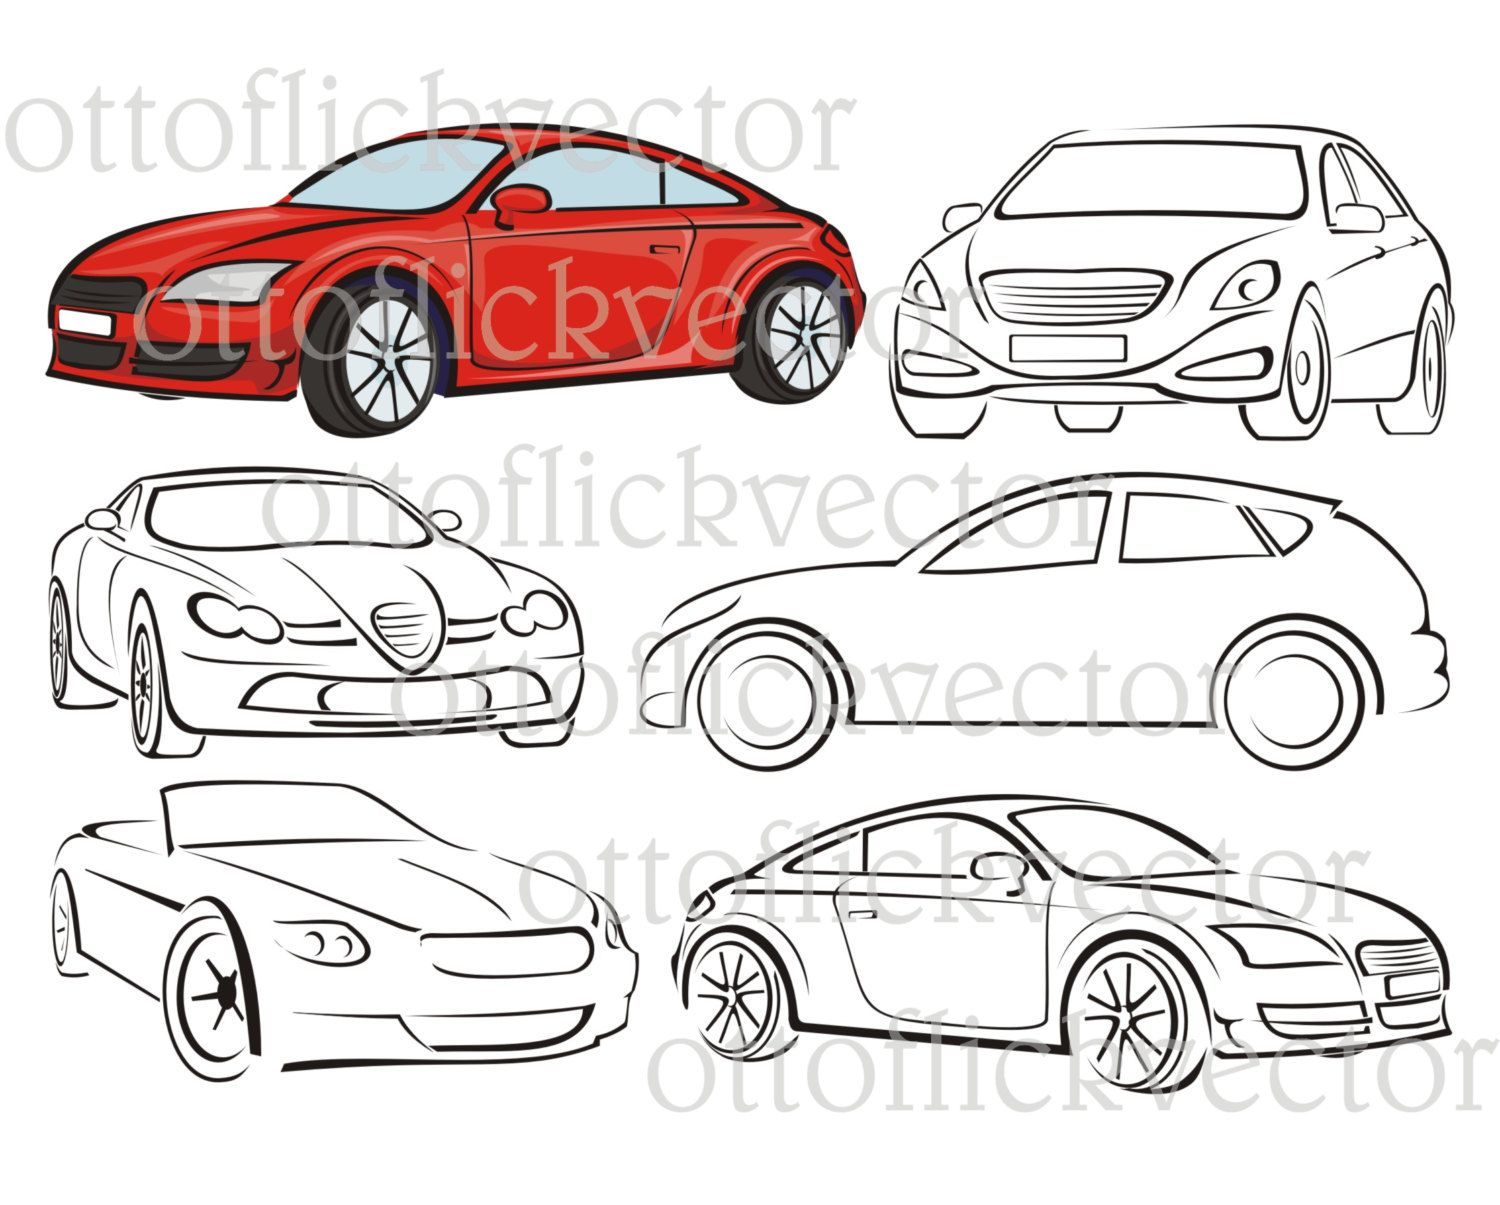 1500x1205 Car Vector Silhouettes, Clipart Cdr, Ai, Eps, Png, Jgp For Cut